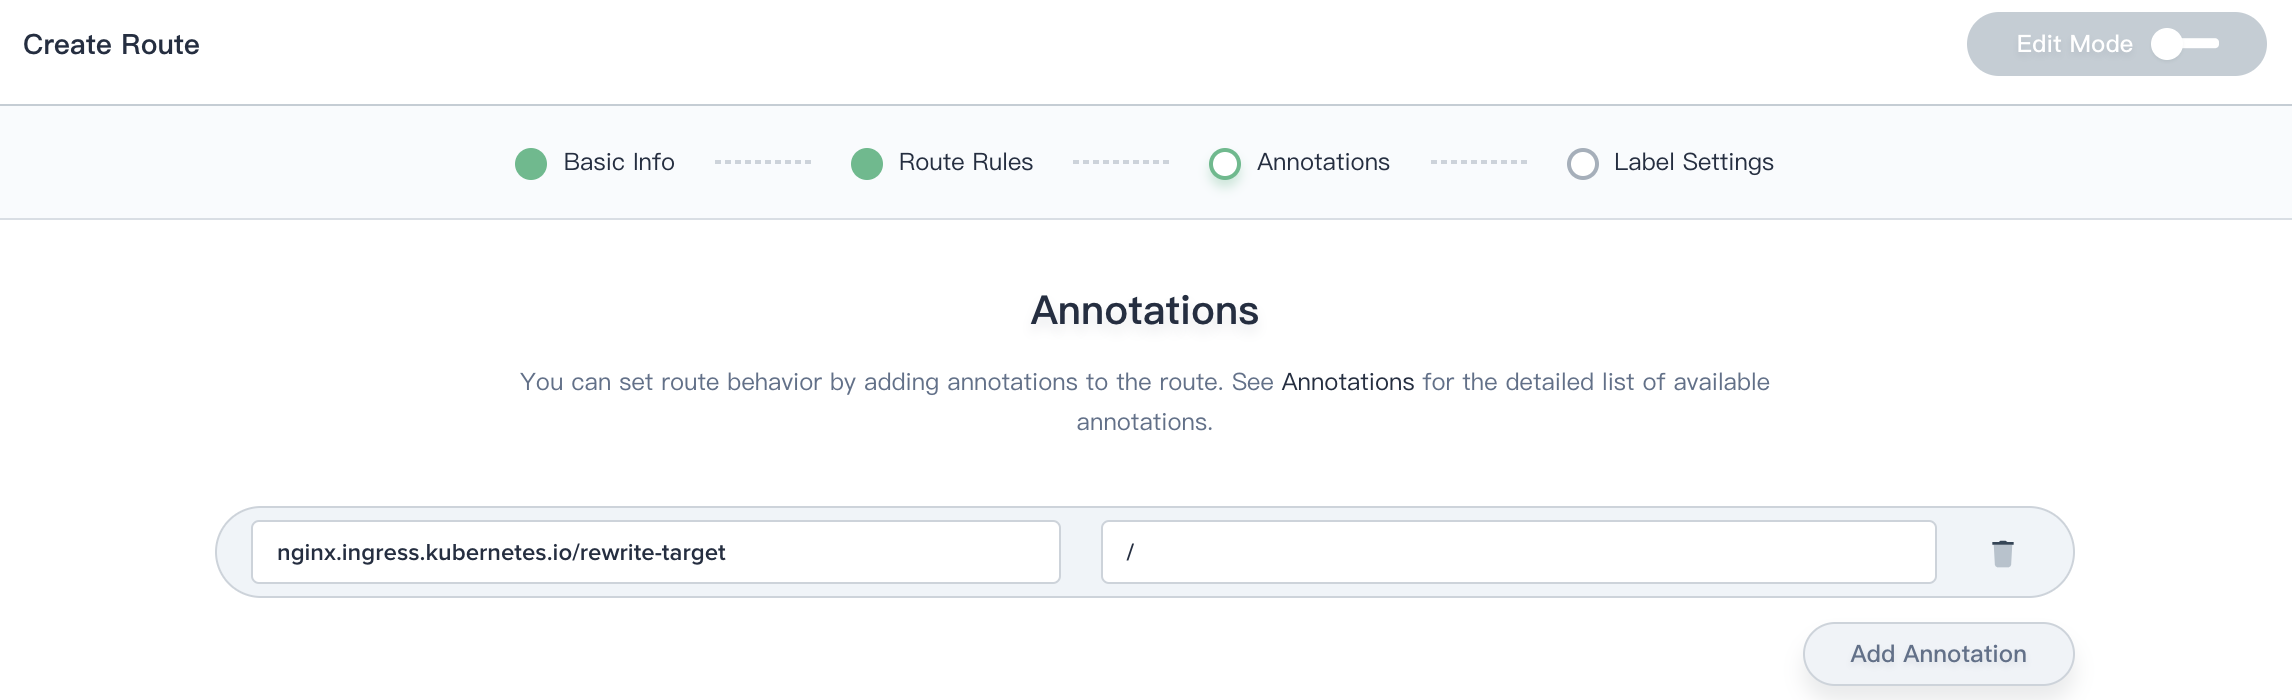 Add Annotations